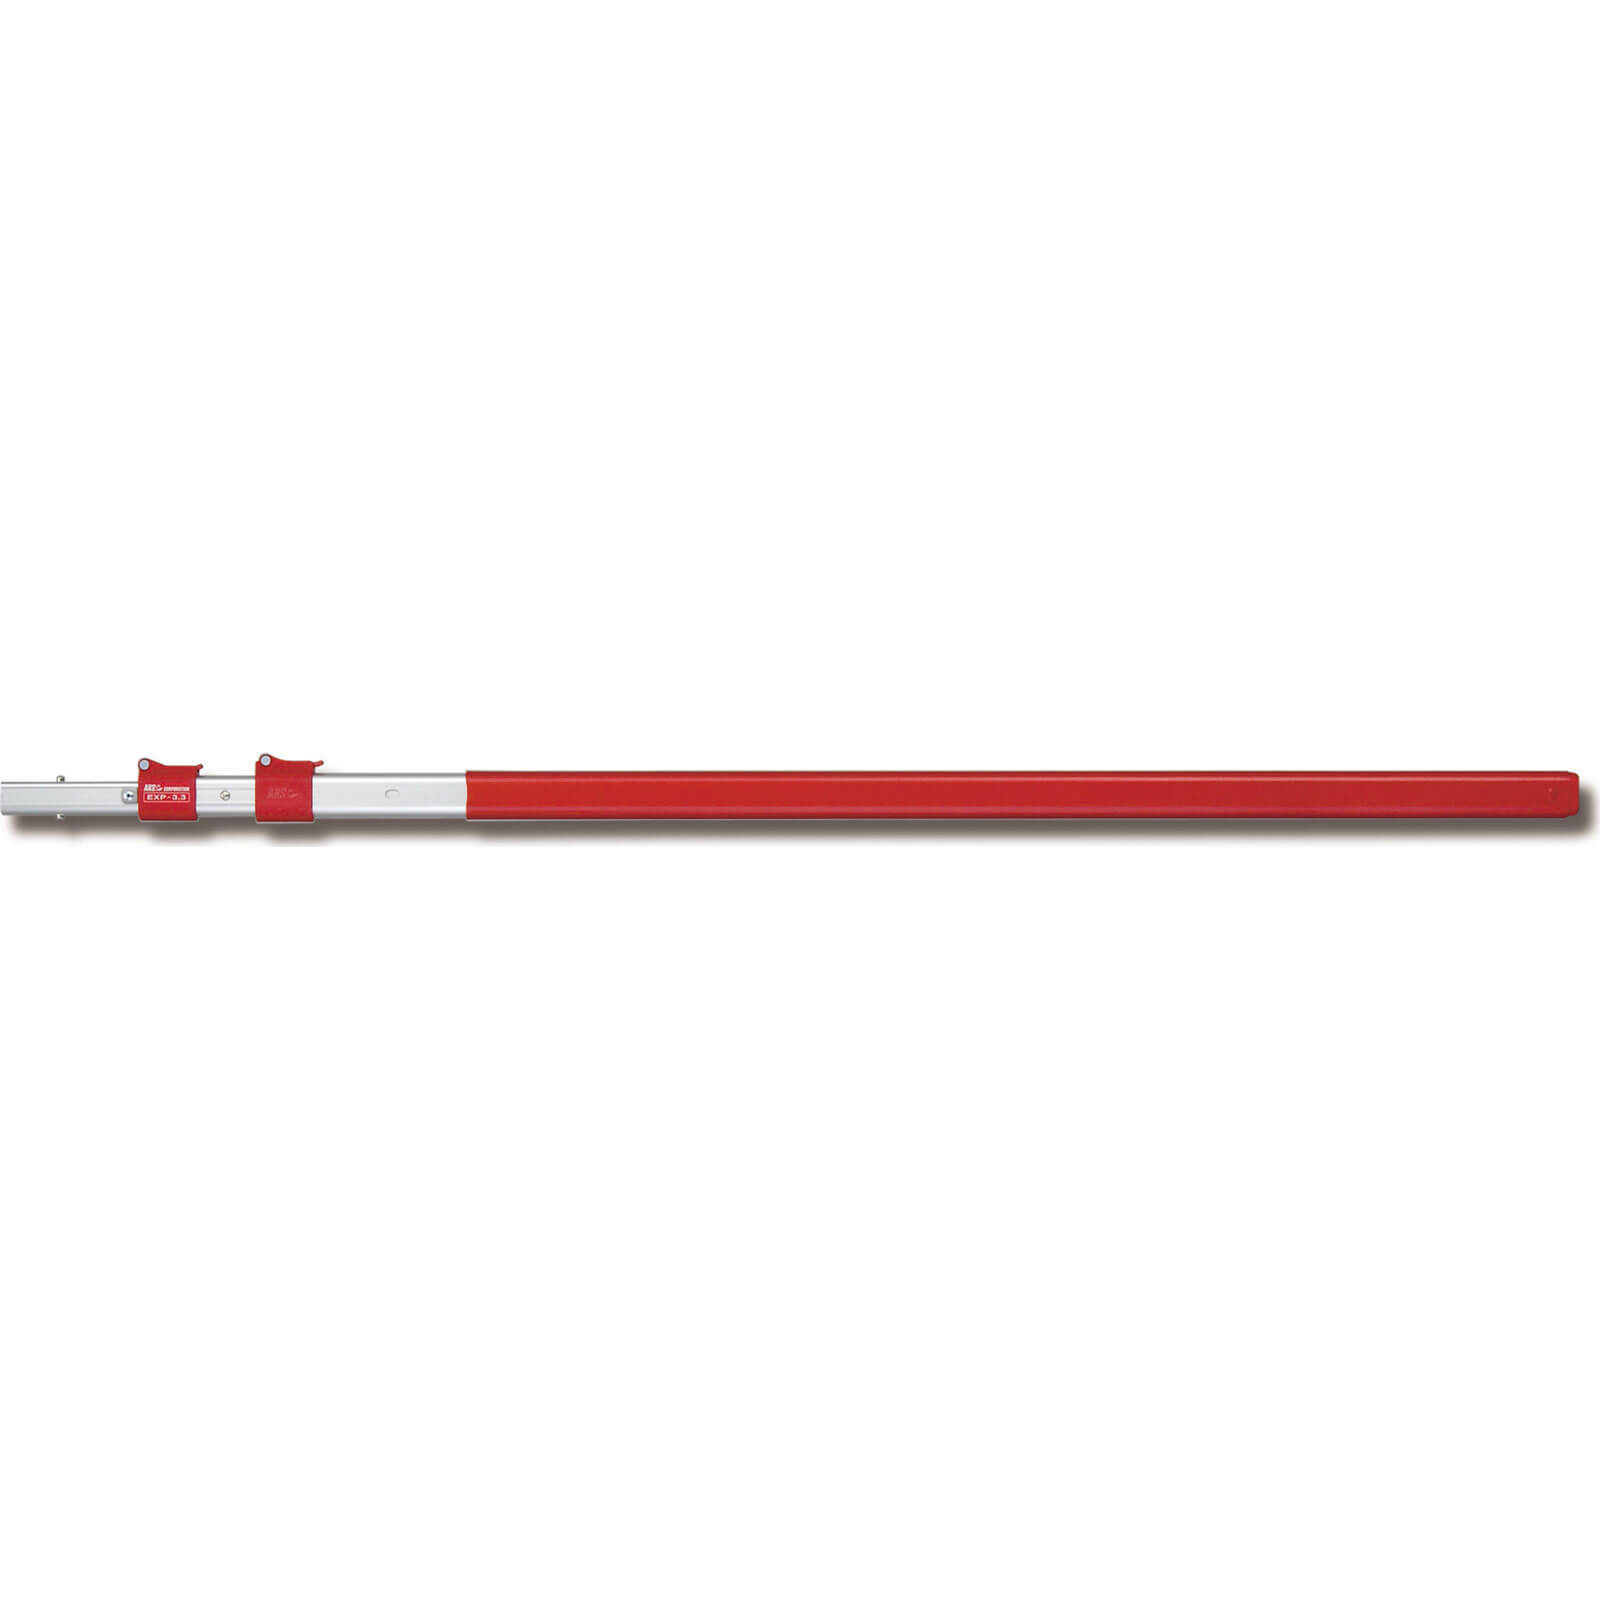 ARS EXP-3.3 Telescopic Pole for Pole Saw Blade Heads 1.4 - 3.2 Metres Long